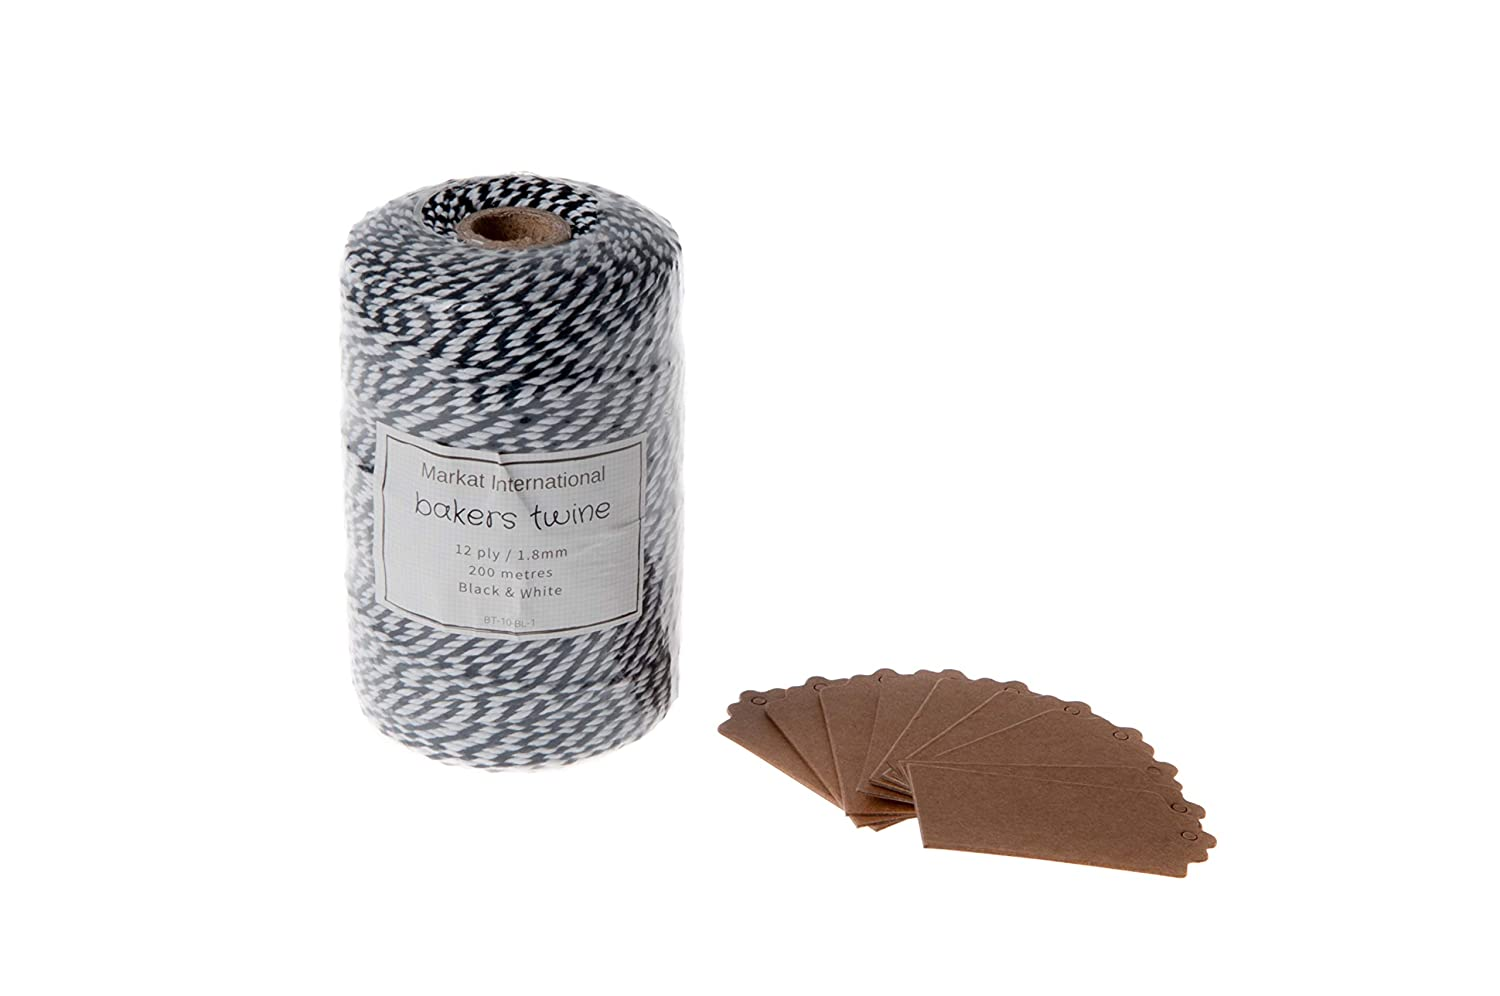 Black and White Bakers Twine Roll in 200 Metres or 656 Feet for Butcher Baking Craft Wrapping and Gardening Comes Complete with 10 Bonus Kraft Gift Tags All by Markat International.